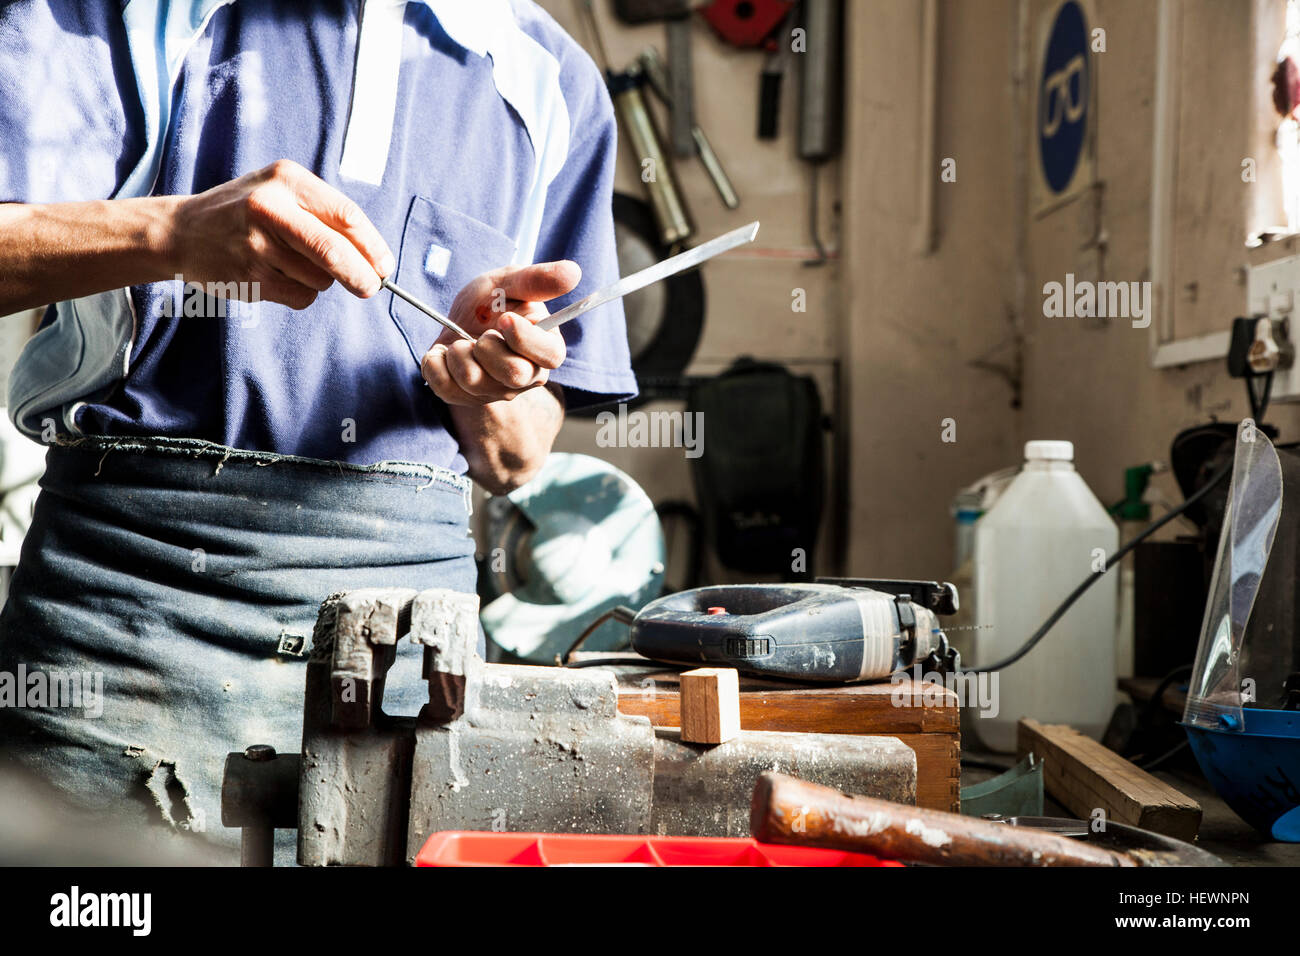 Mid section of young man using screwdriver in repair workshop - Stock Image